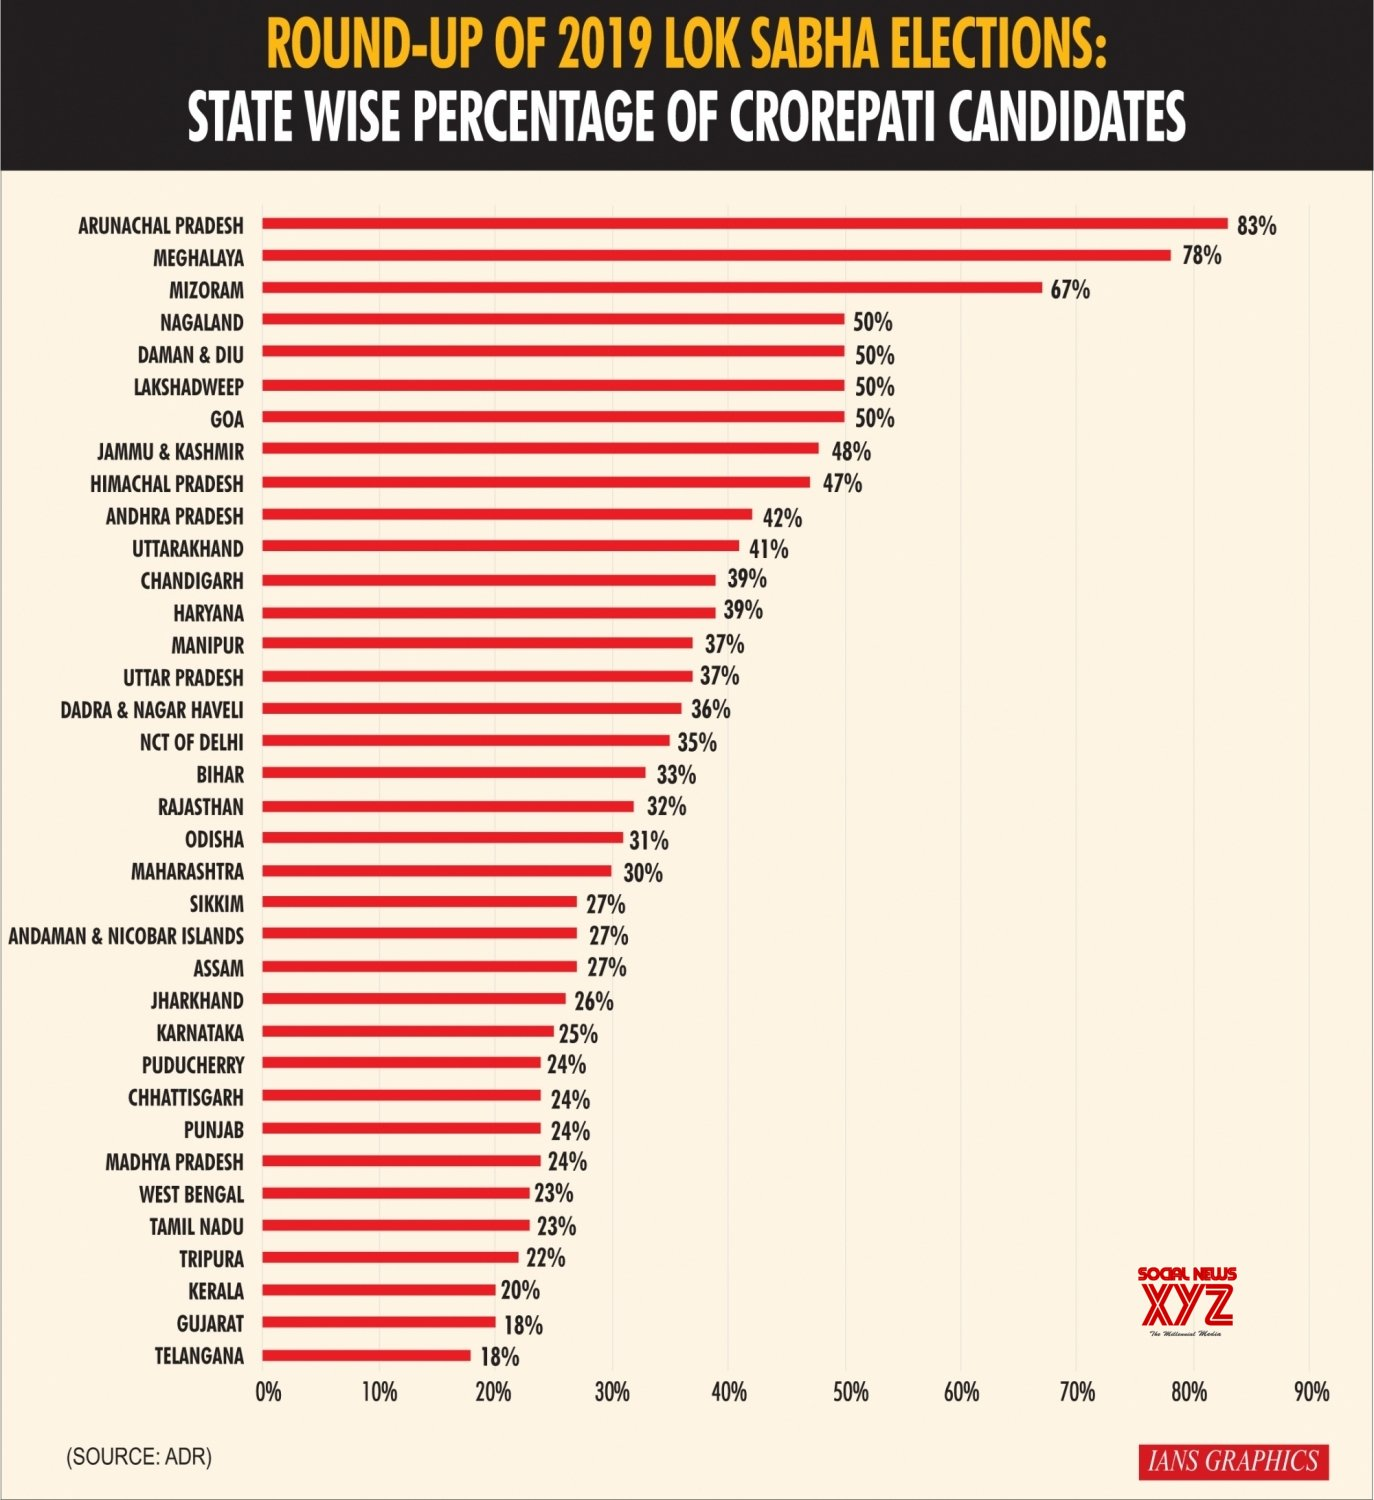 Infographics: Round - Up of 2019 Lok Sabha Elections: State Wise Percentage of Crorepati Candidates #Gallery